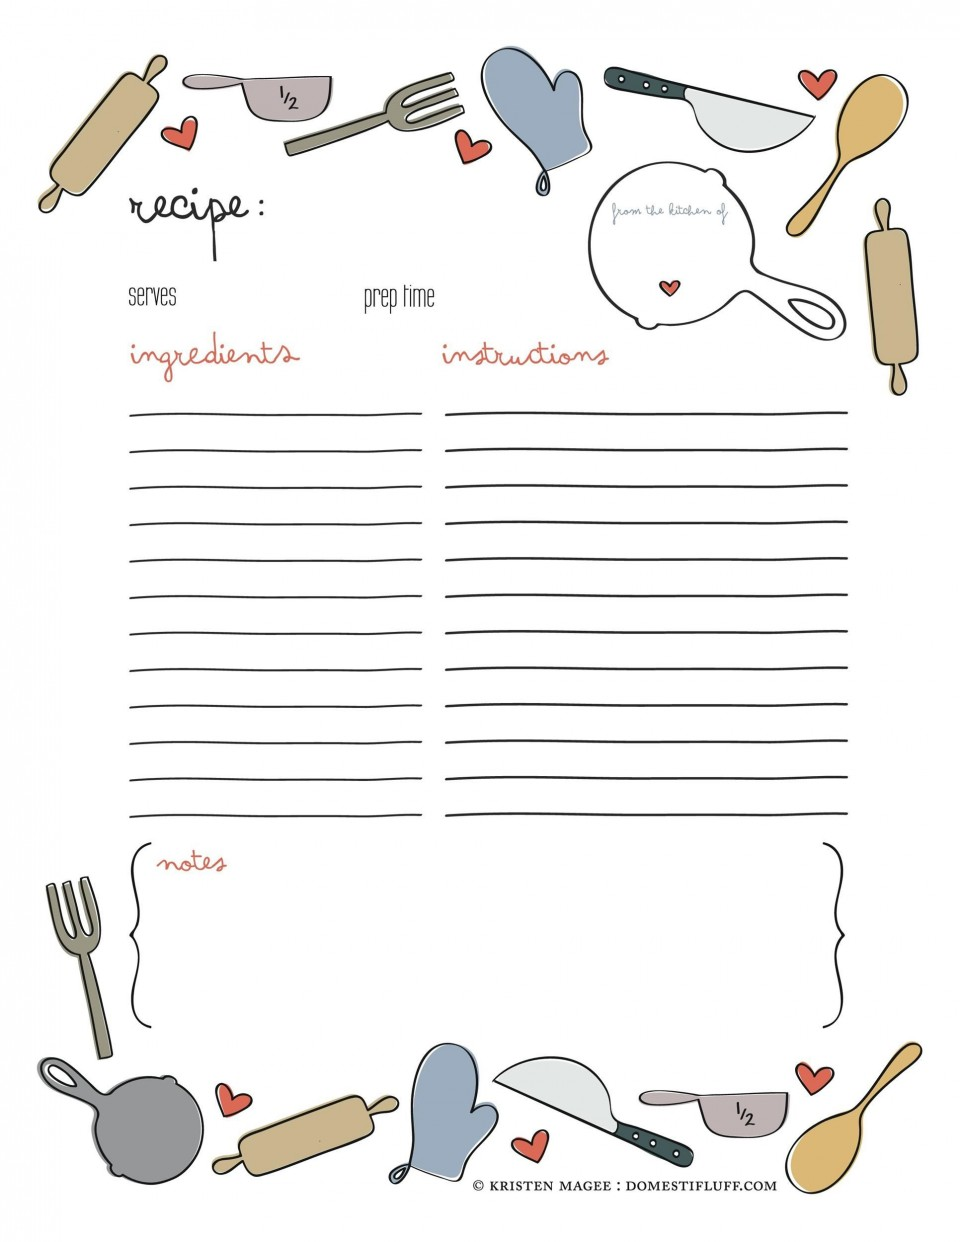 008 Remarkable Free Make Your Own Cookbook Template Download Photo 960